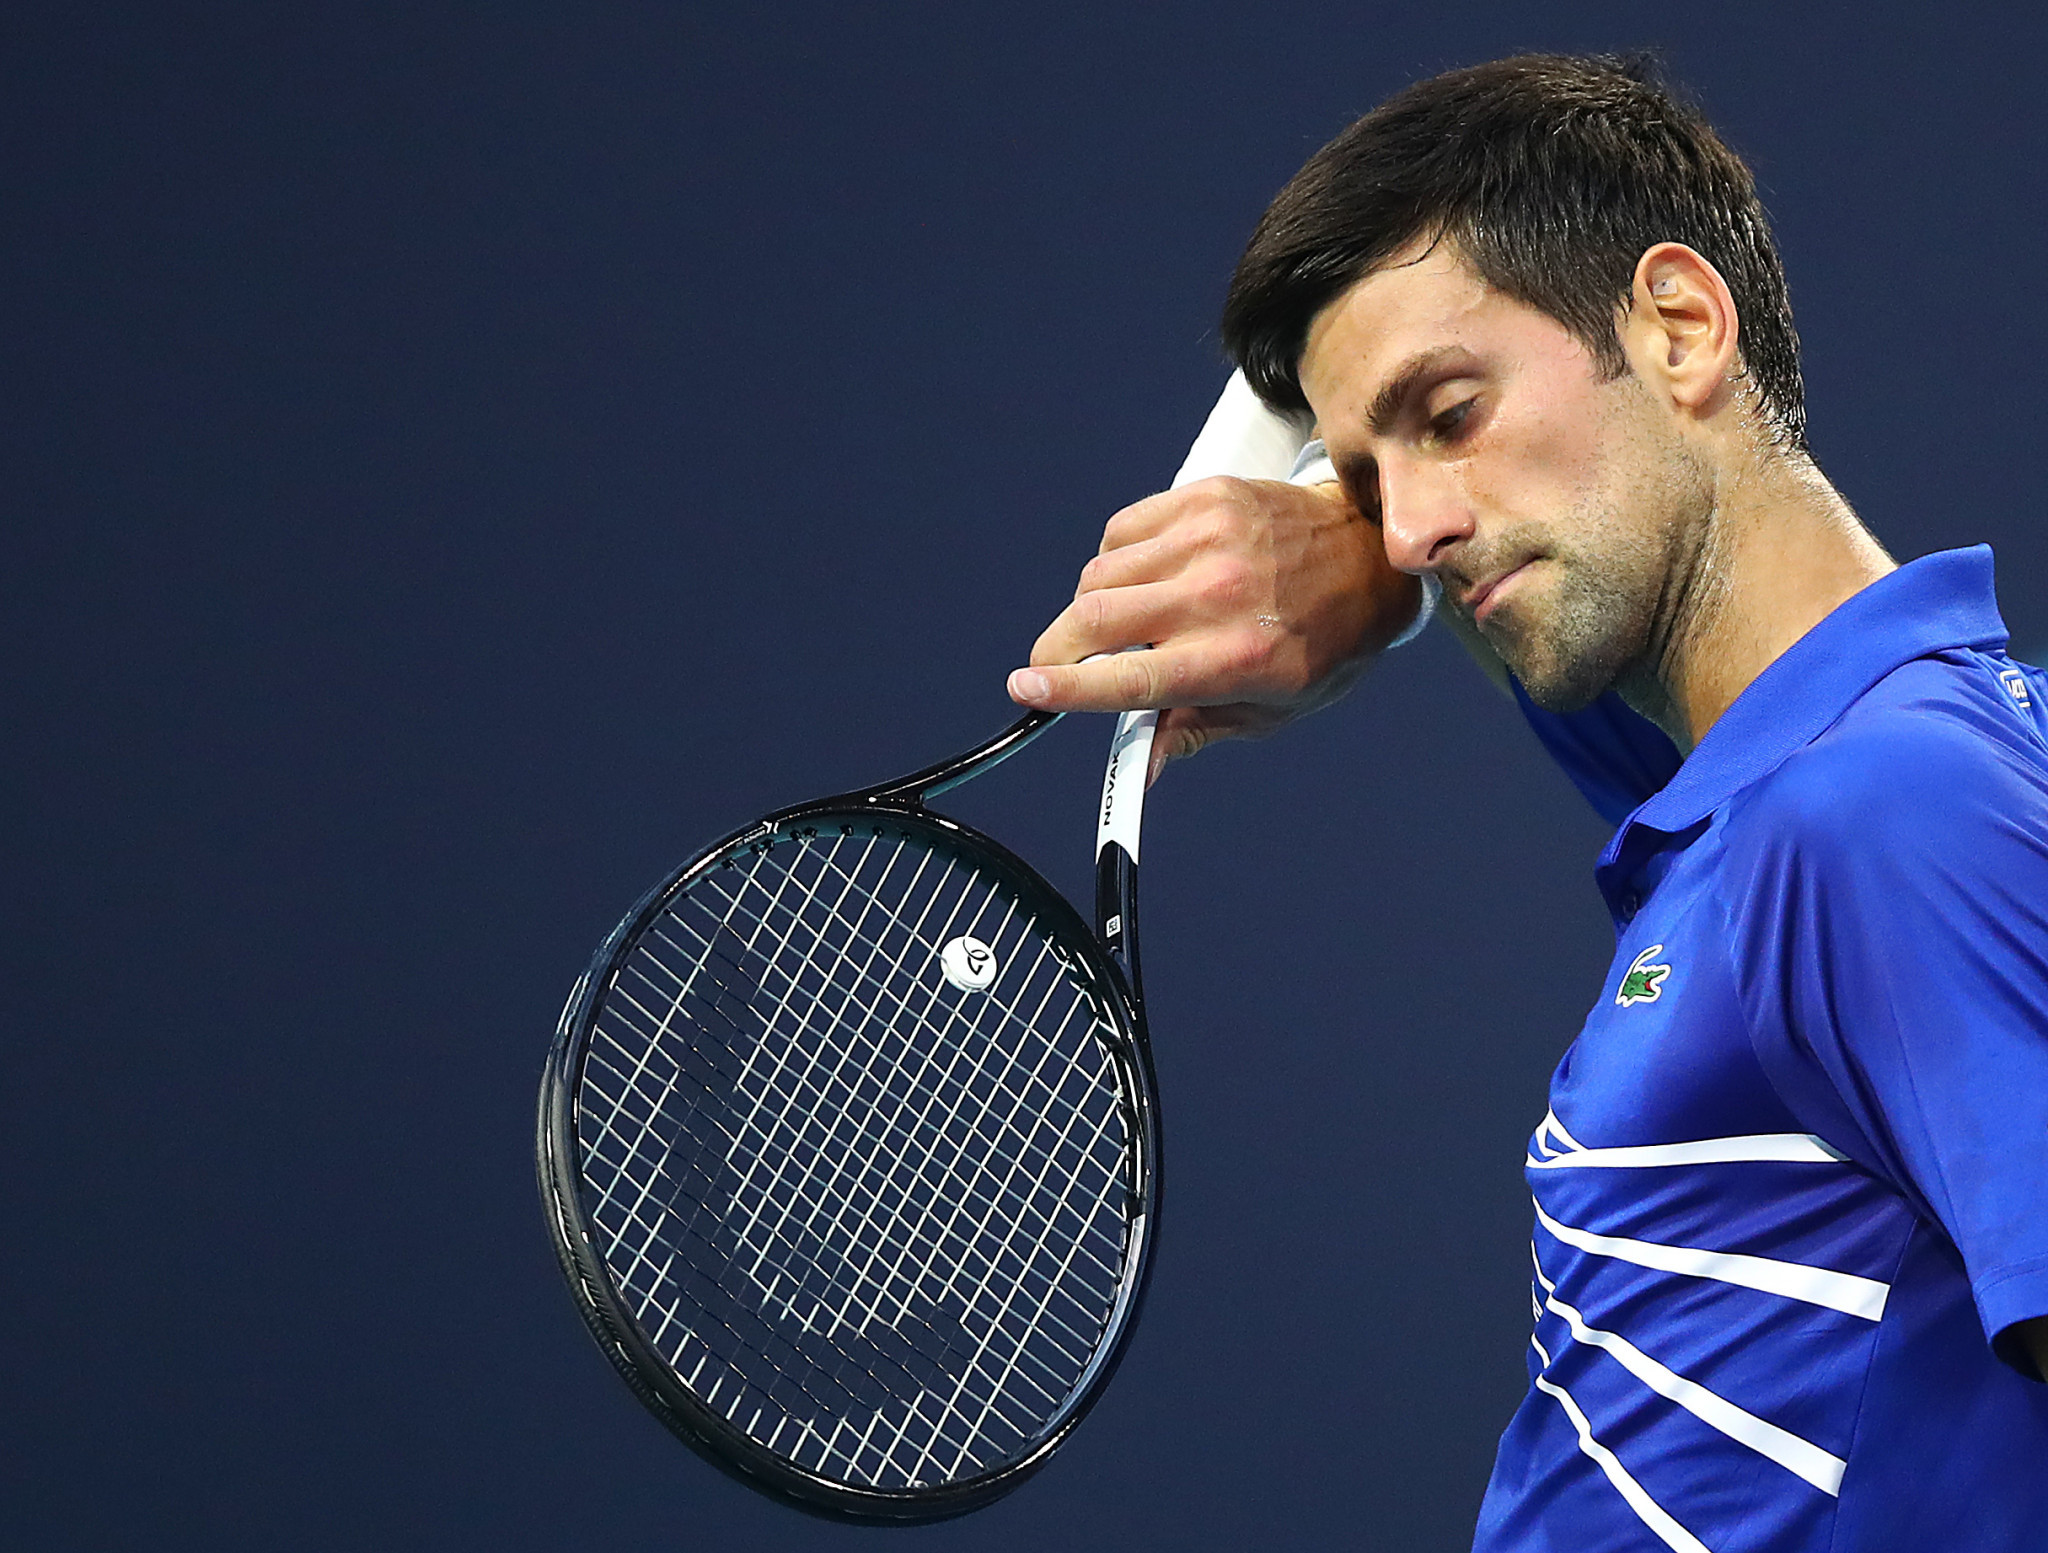 World number one Novak Djokovic exited the Miami Open in the fourth round ©Getty Images